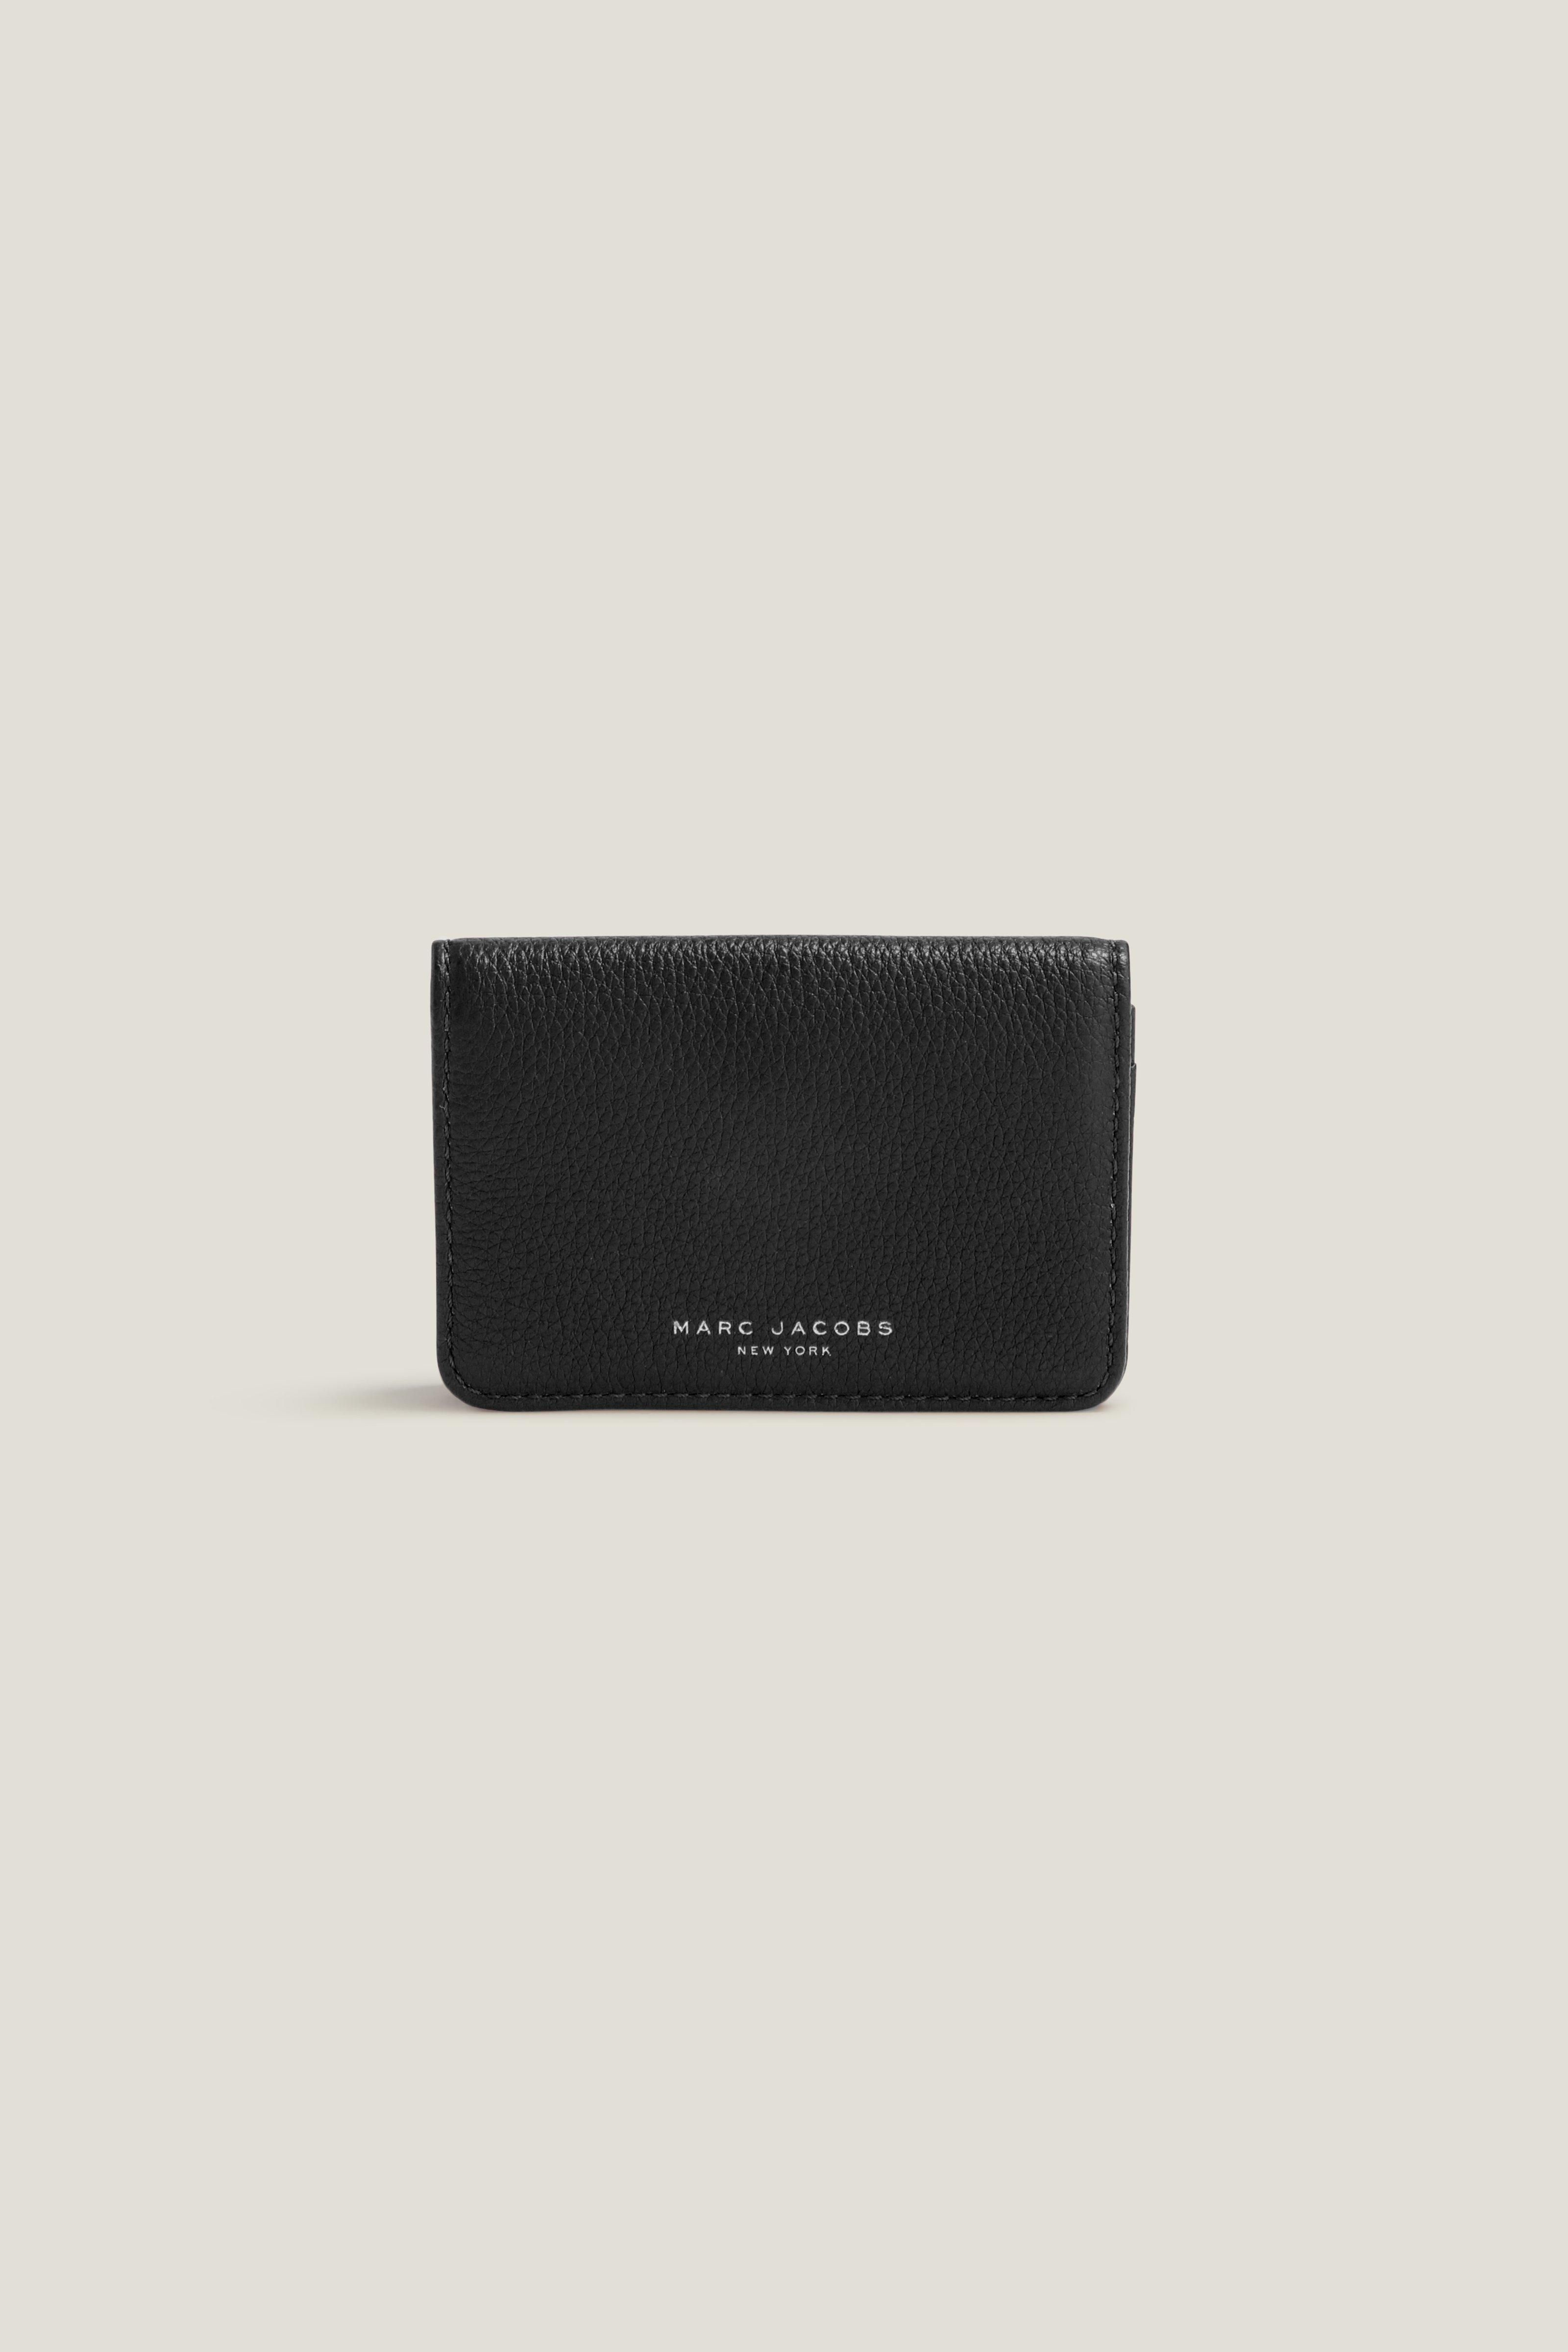 Marc jacobs recruit business card case marcjacobs marc jacobs marc jacobs recruit business card case marcjacobs colourmoves